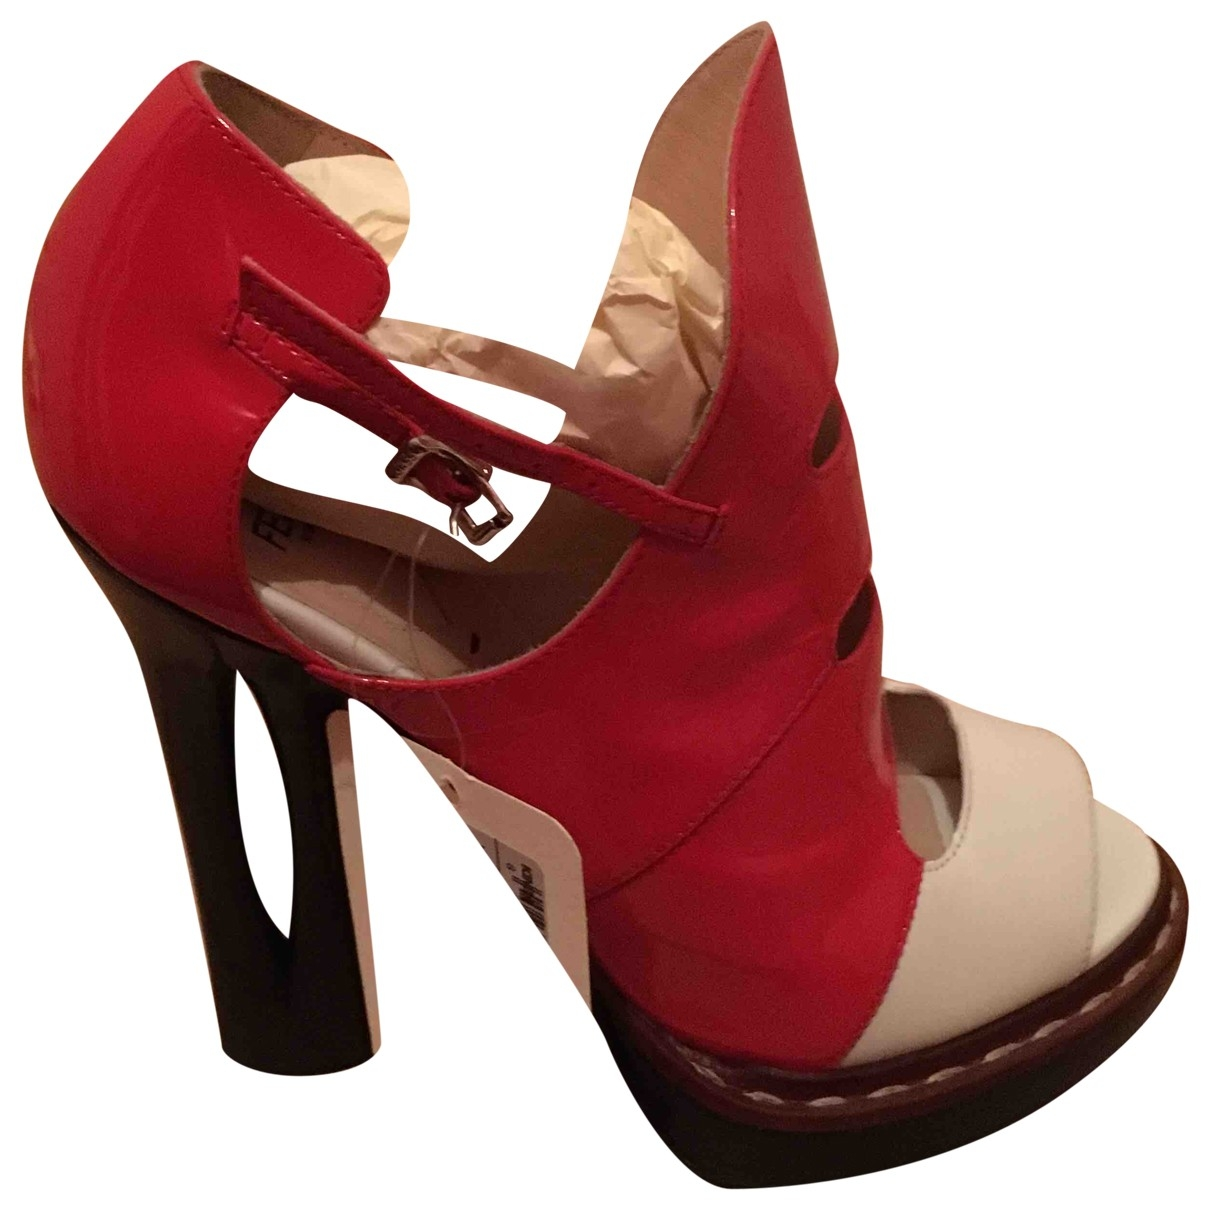 Fendi \N Red Patent leather Ankle boots for Women 38 EU